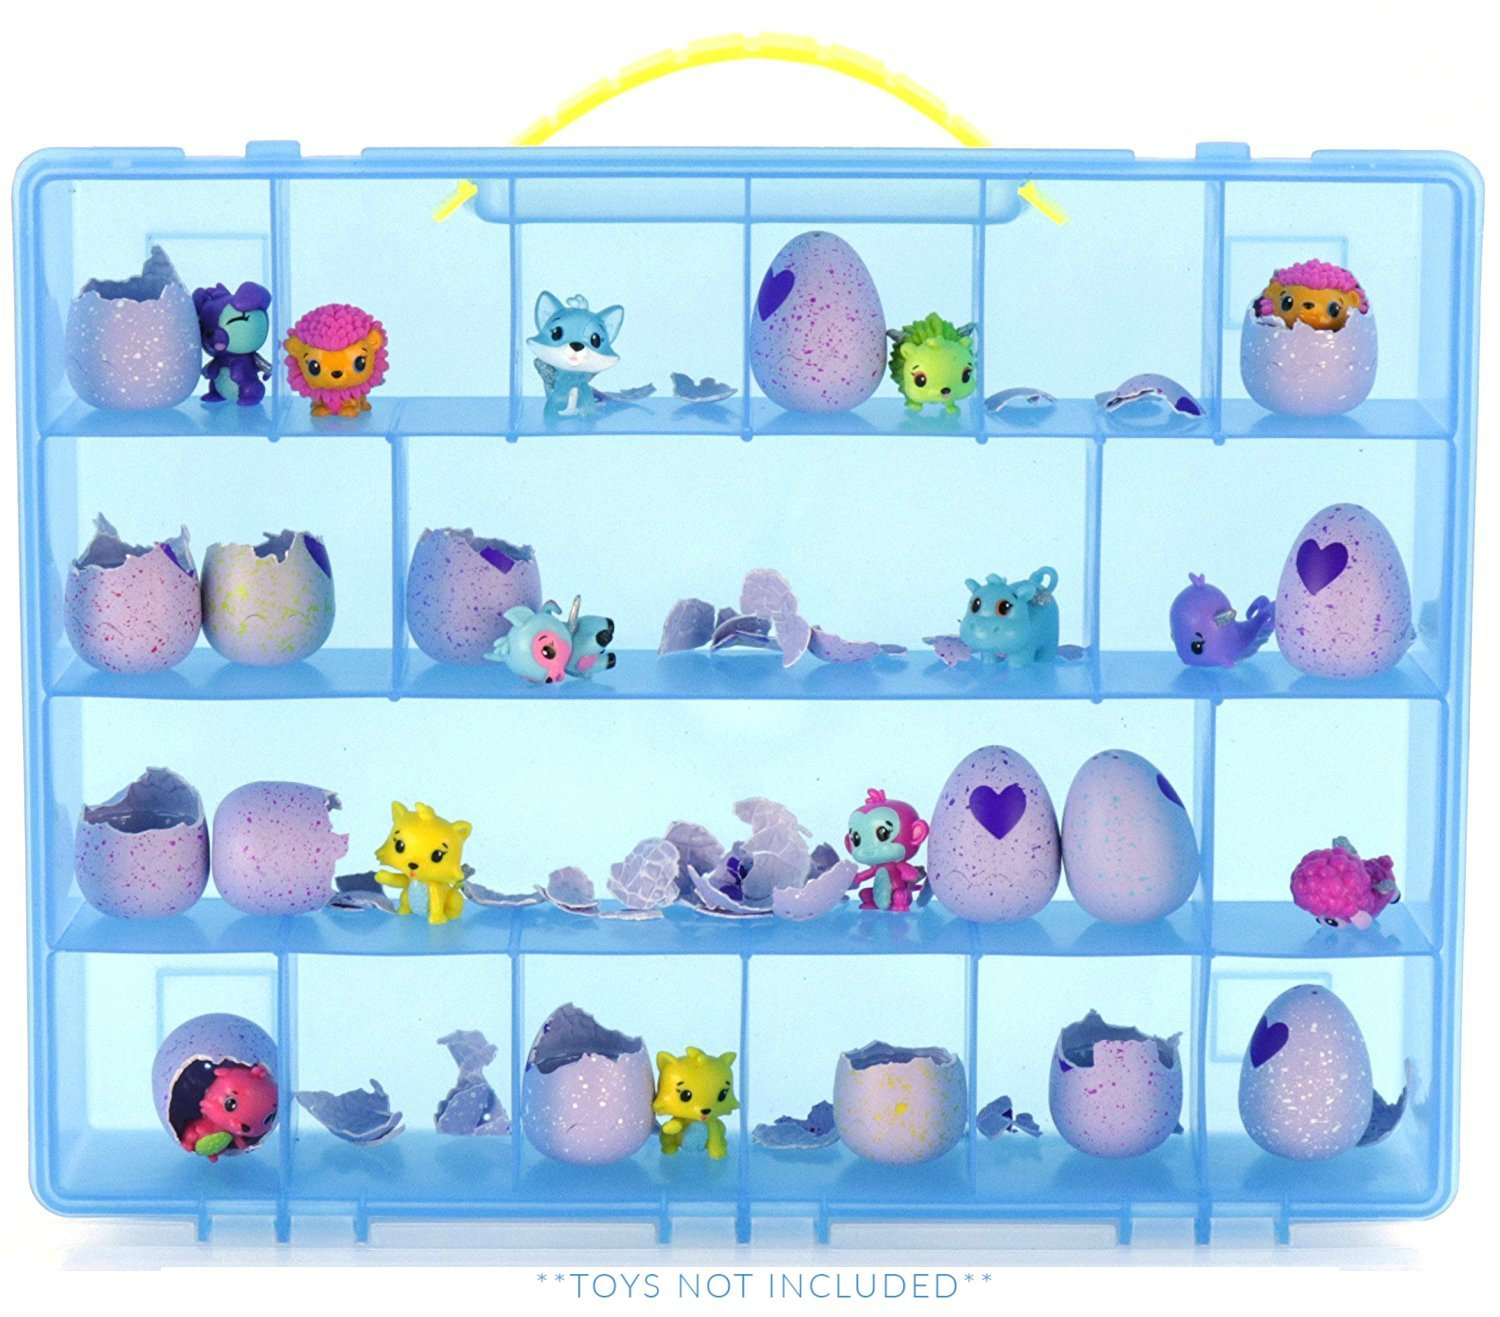 Life Made Better My Egg Crate Storage Organizer Compatible the Hatchimals Hatchimal Colleggtibles brands - Durable Carrying Case Mini Eggs, Easter Eggs & Speckled Eggs – Blue LMB86